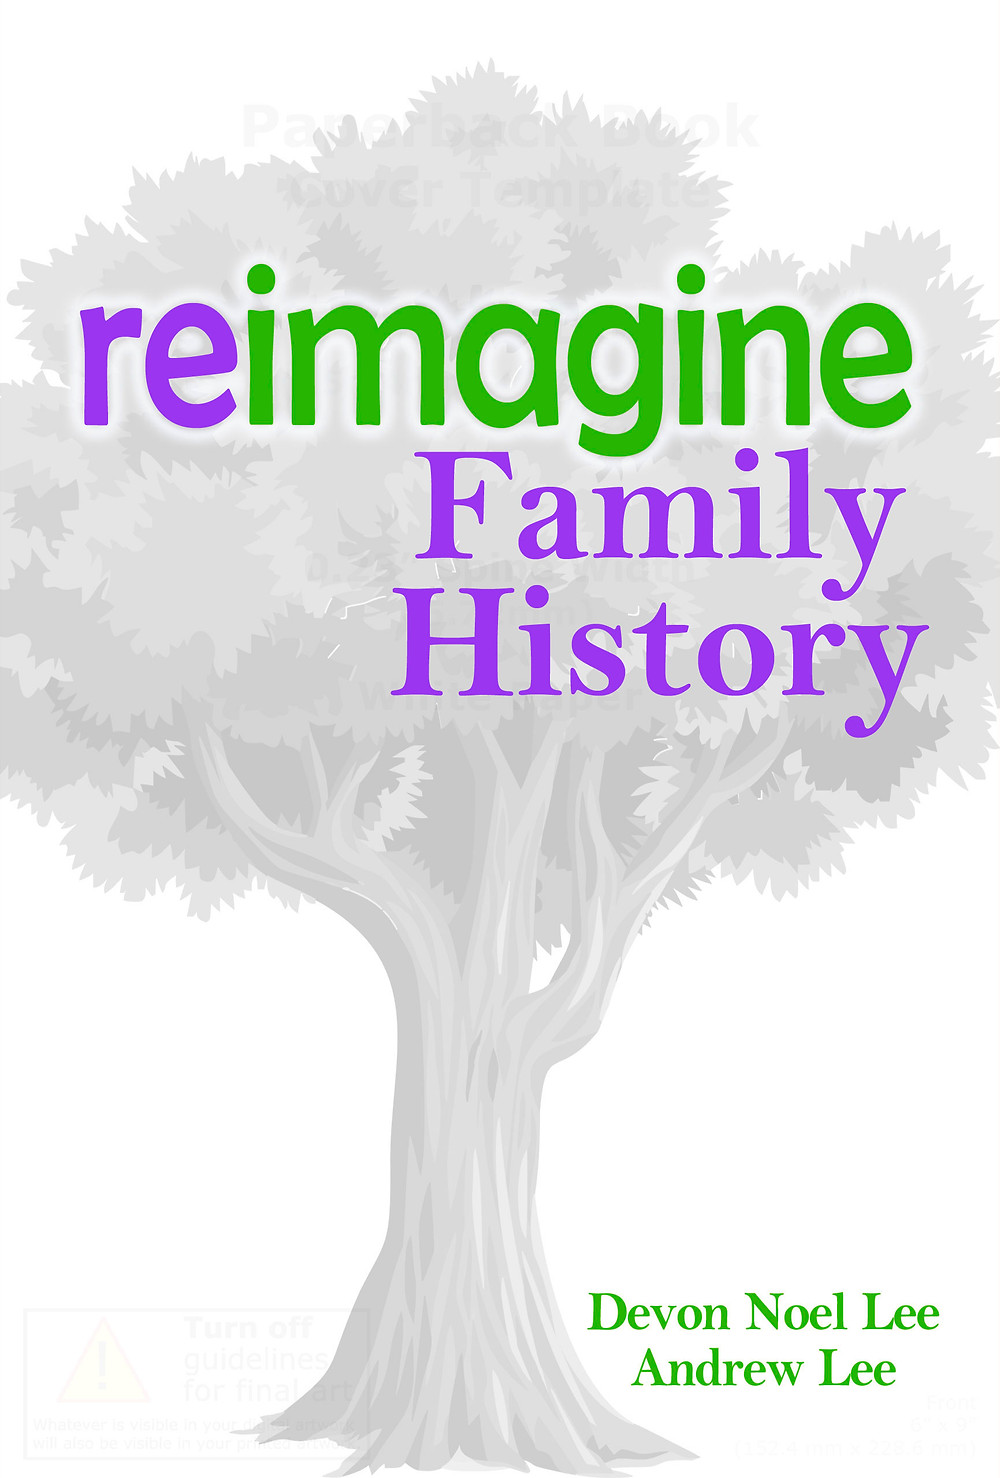 Reimagine Family History Book Cover - The one book that helps you fall in love with family history.